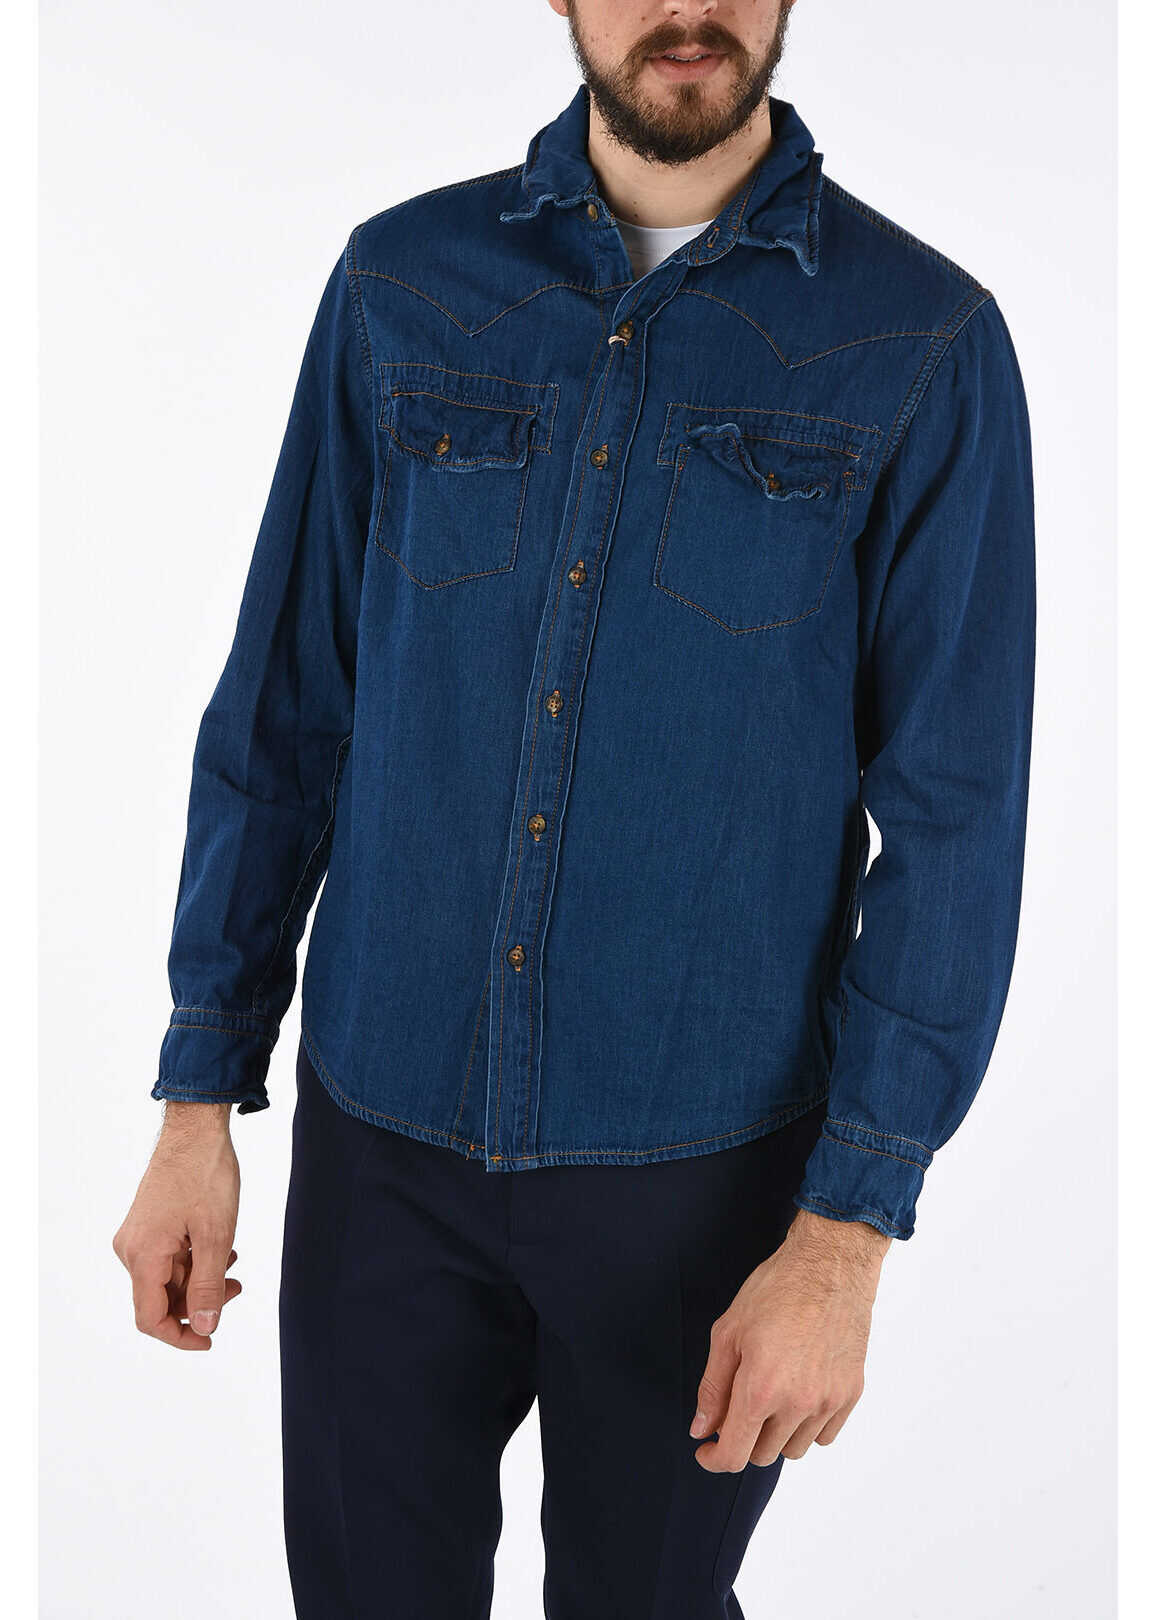 Original Vintage Style Denim FARGO Shirt BLUE